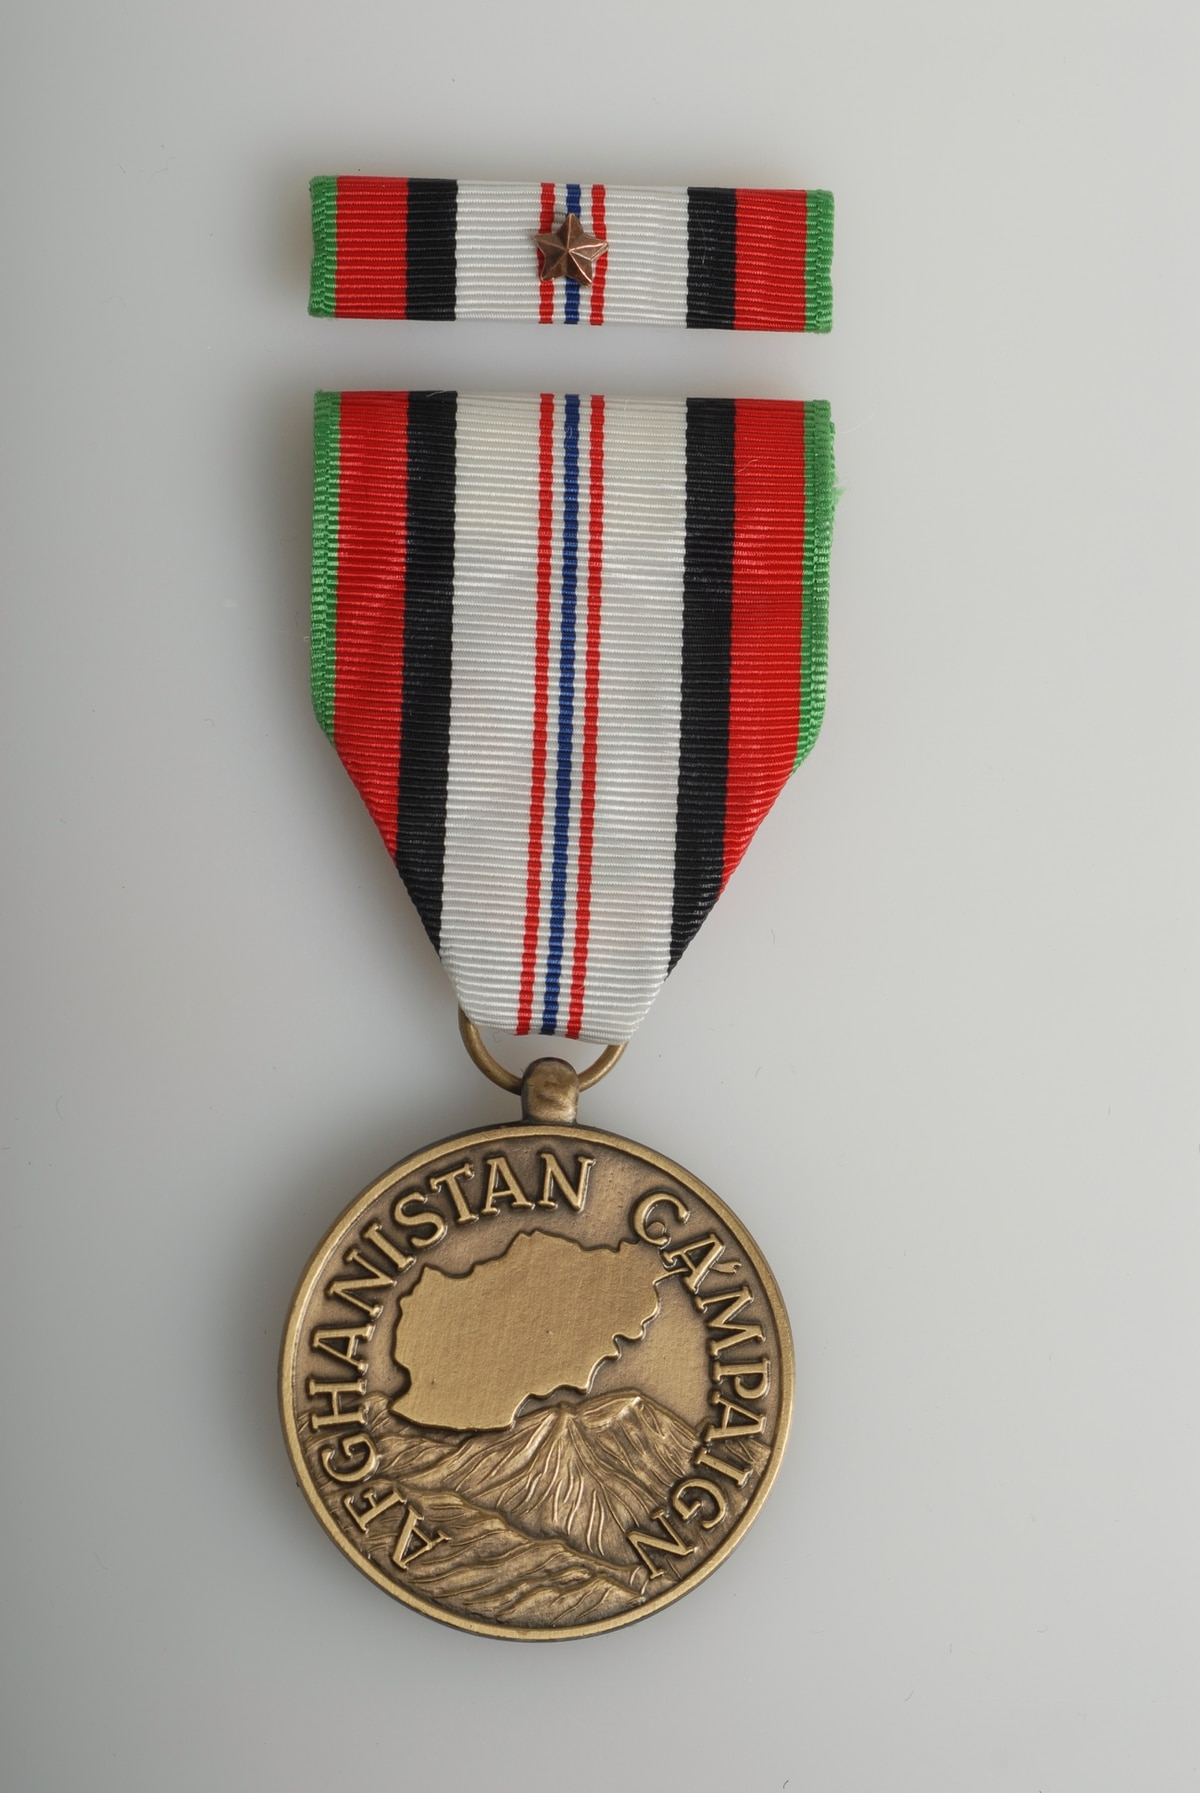 Rules for wearing service stars with Afghanistan Medal